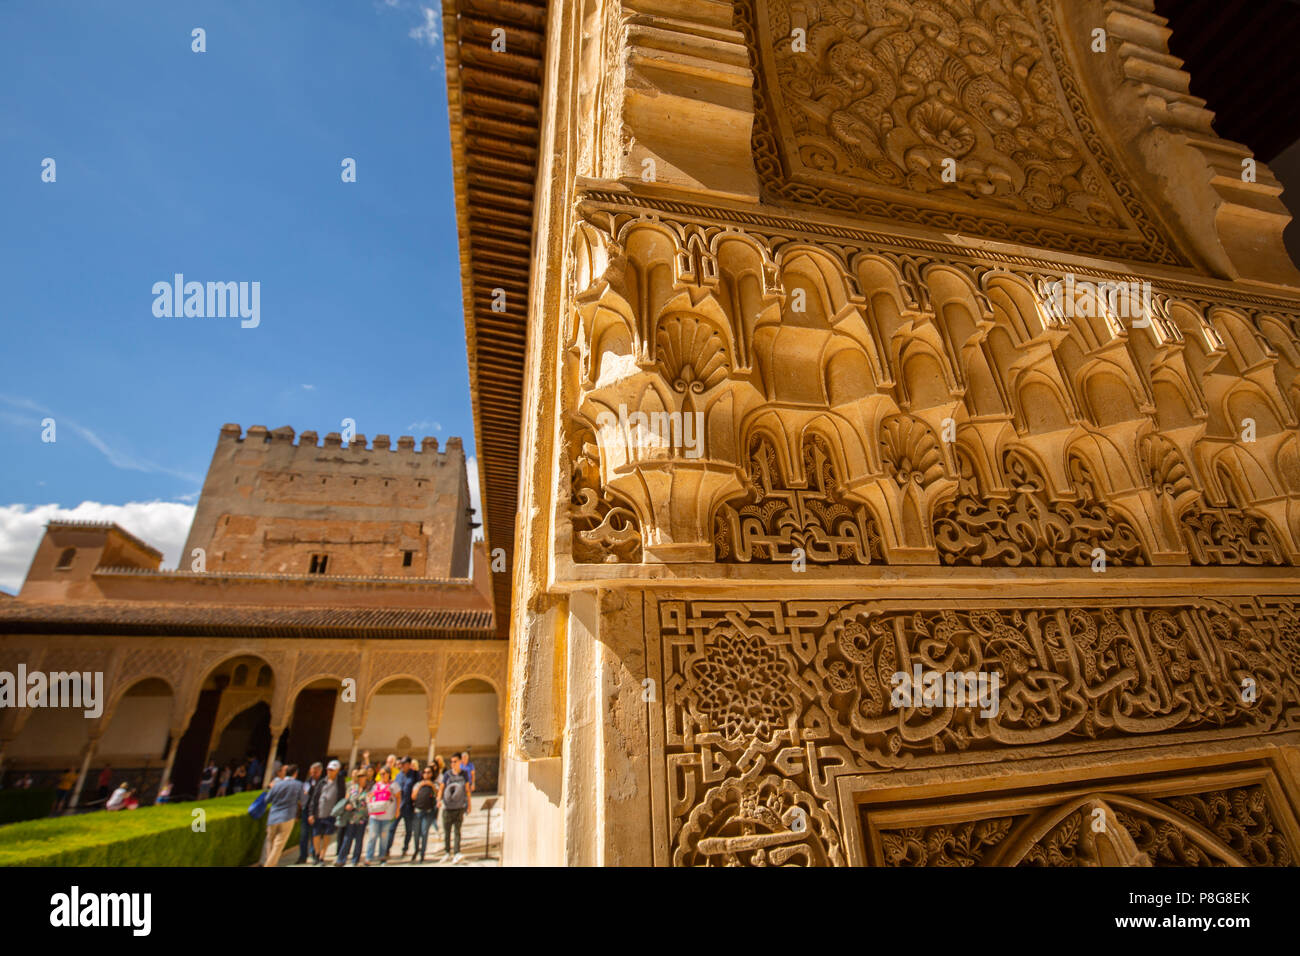 Patio de los Arrayanes. Decorative carving in wall plaster work in the Nasrid Palace. Alhambra, UNESCO World Heritage Site. Granada City. Andalusia, S Stock Photo